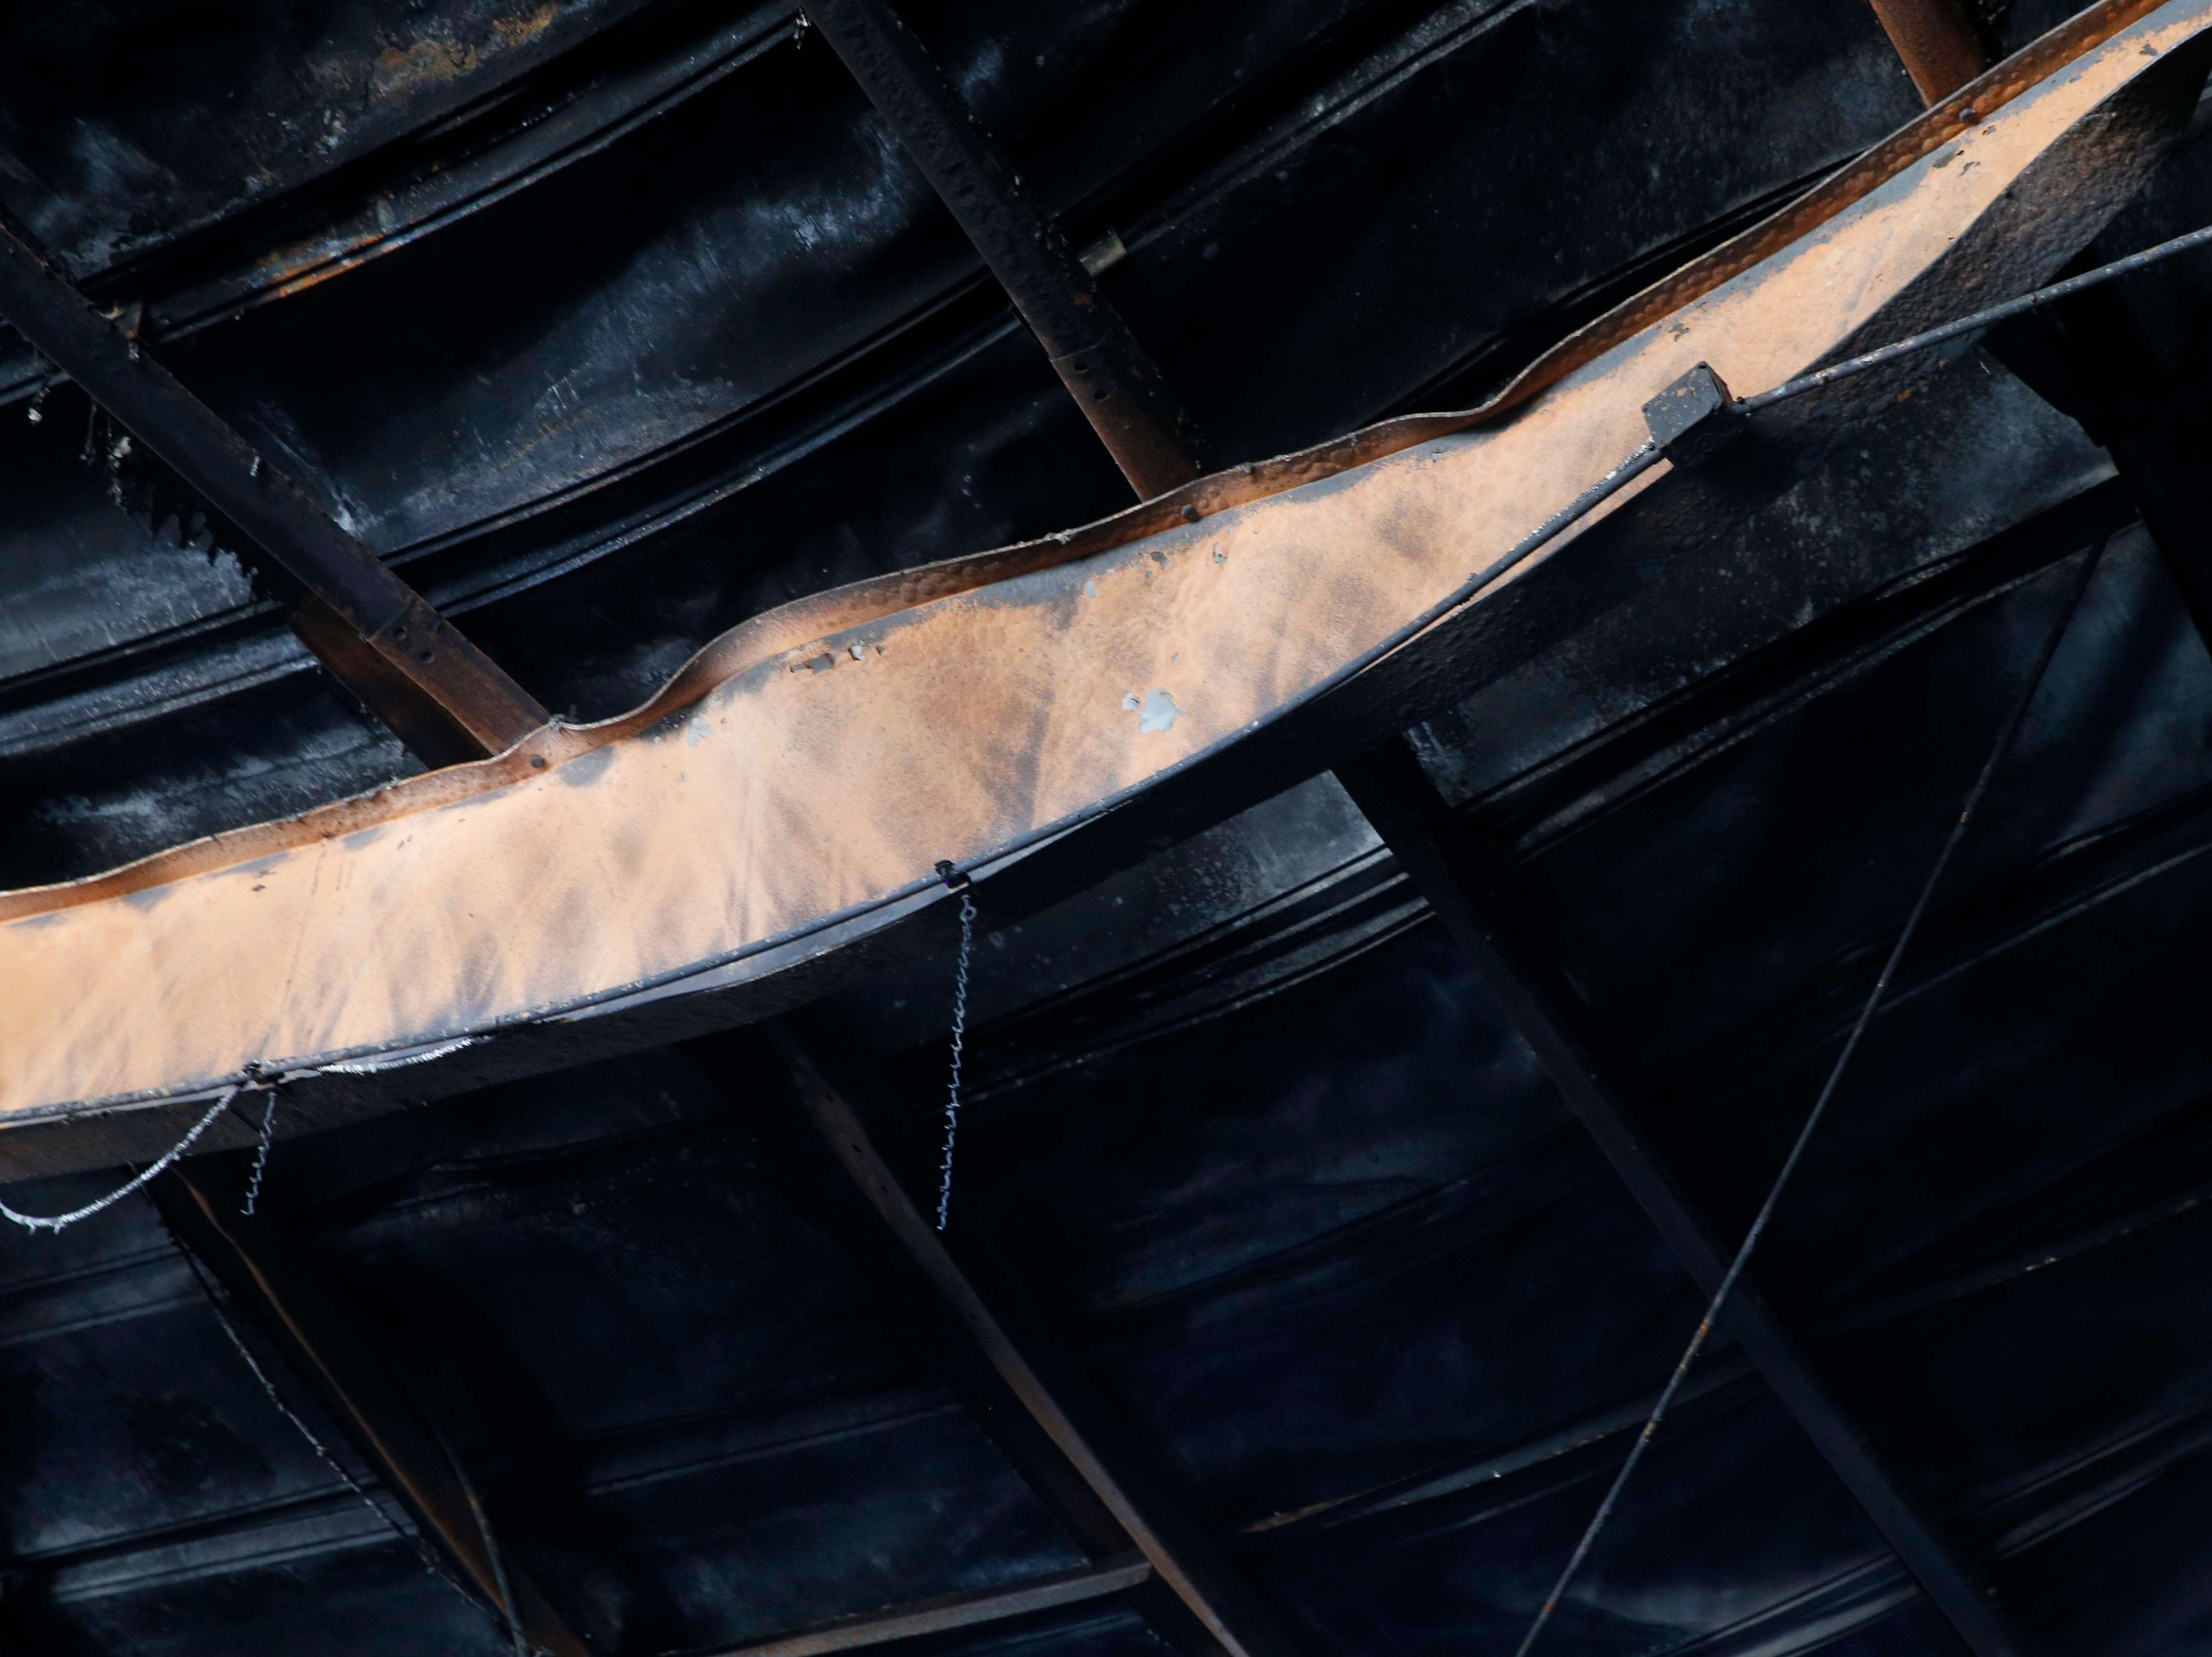 A twisted metal ceiling beam Inside Gleason Incorporated's building in the Town of Poughkeepsie on April 17, 2019. A fire in March damaged the building beyond repair.